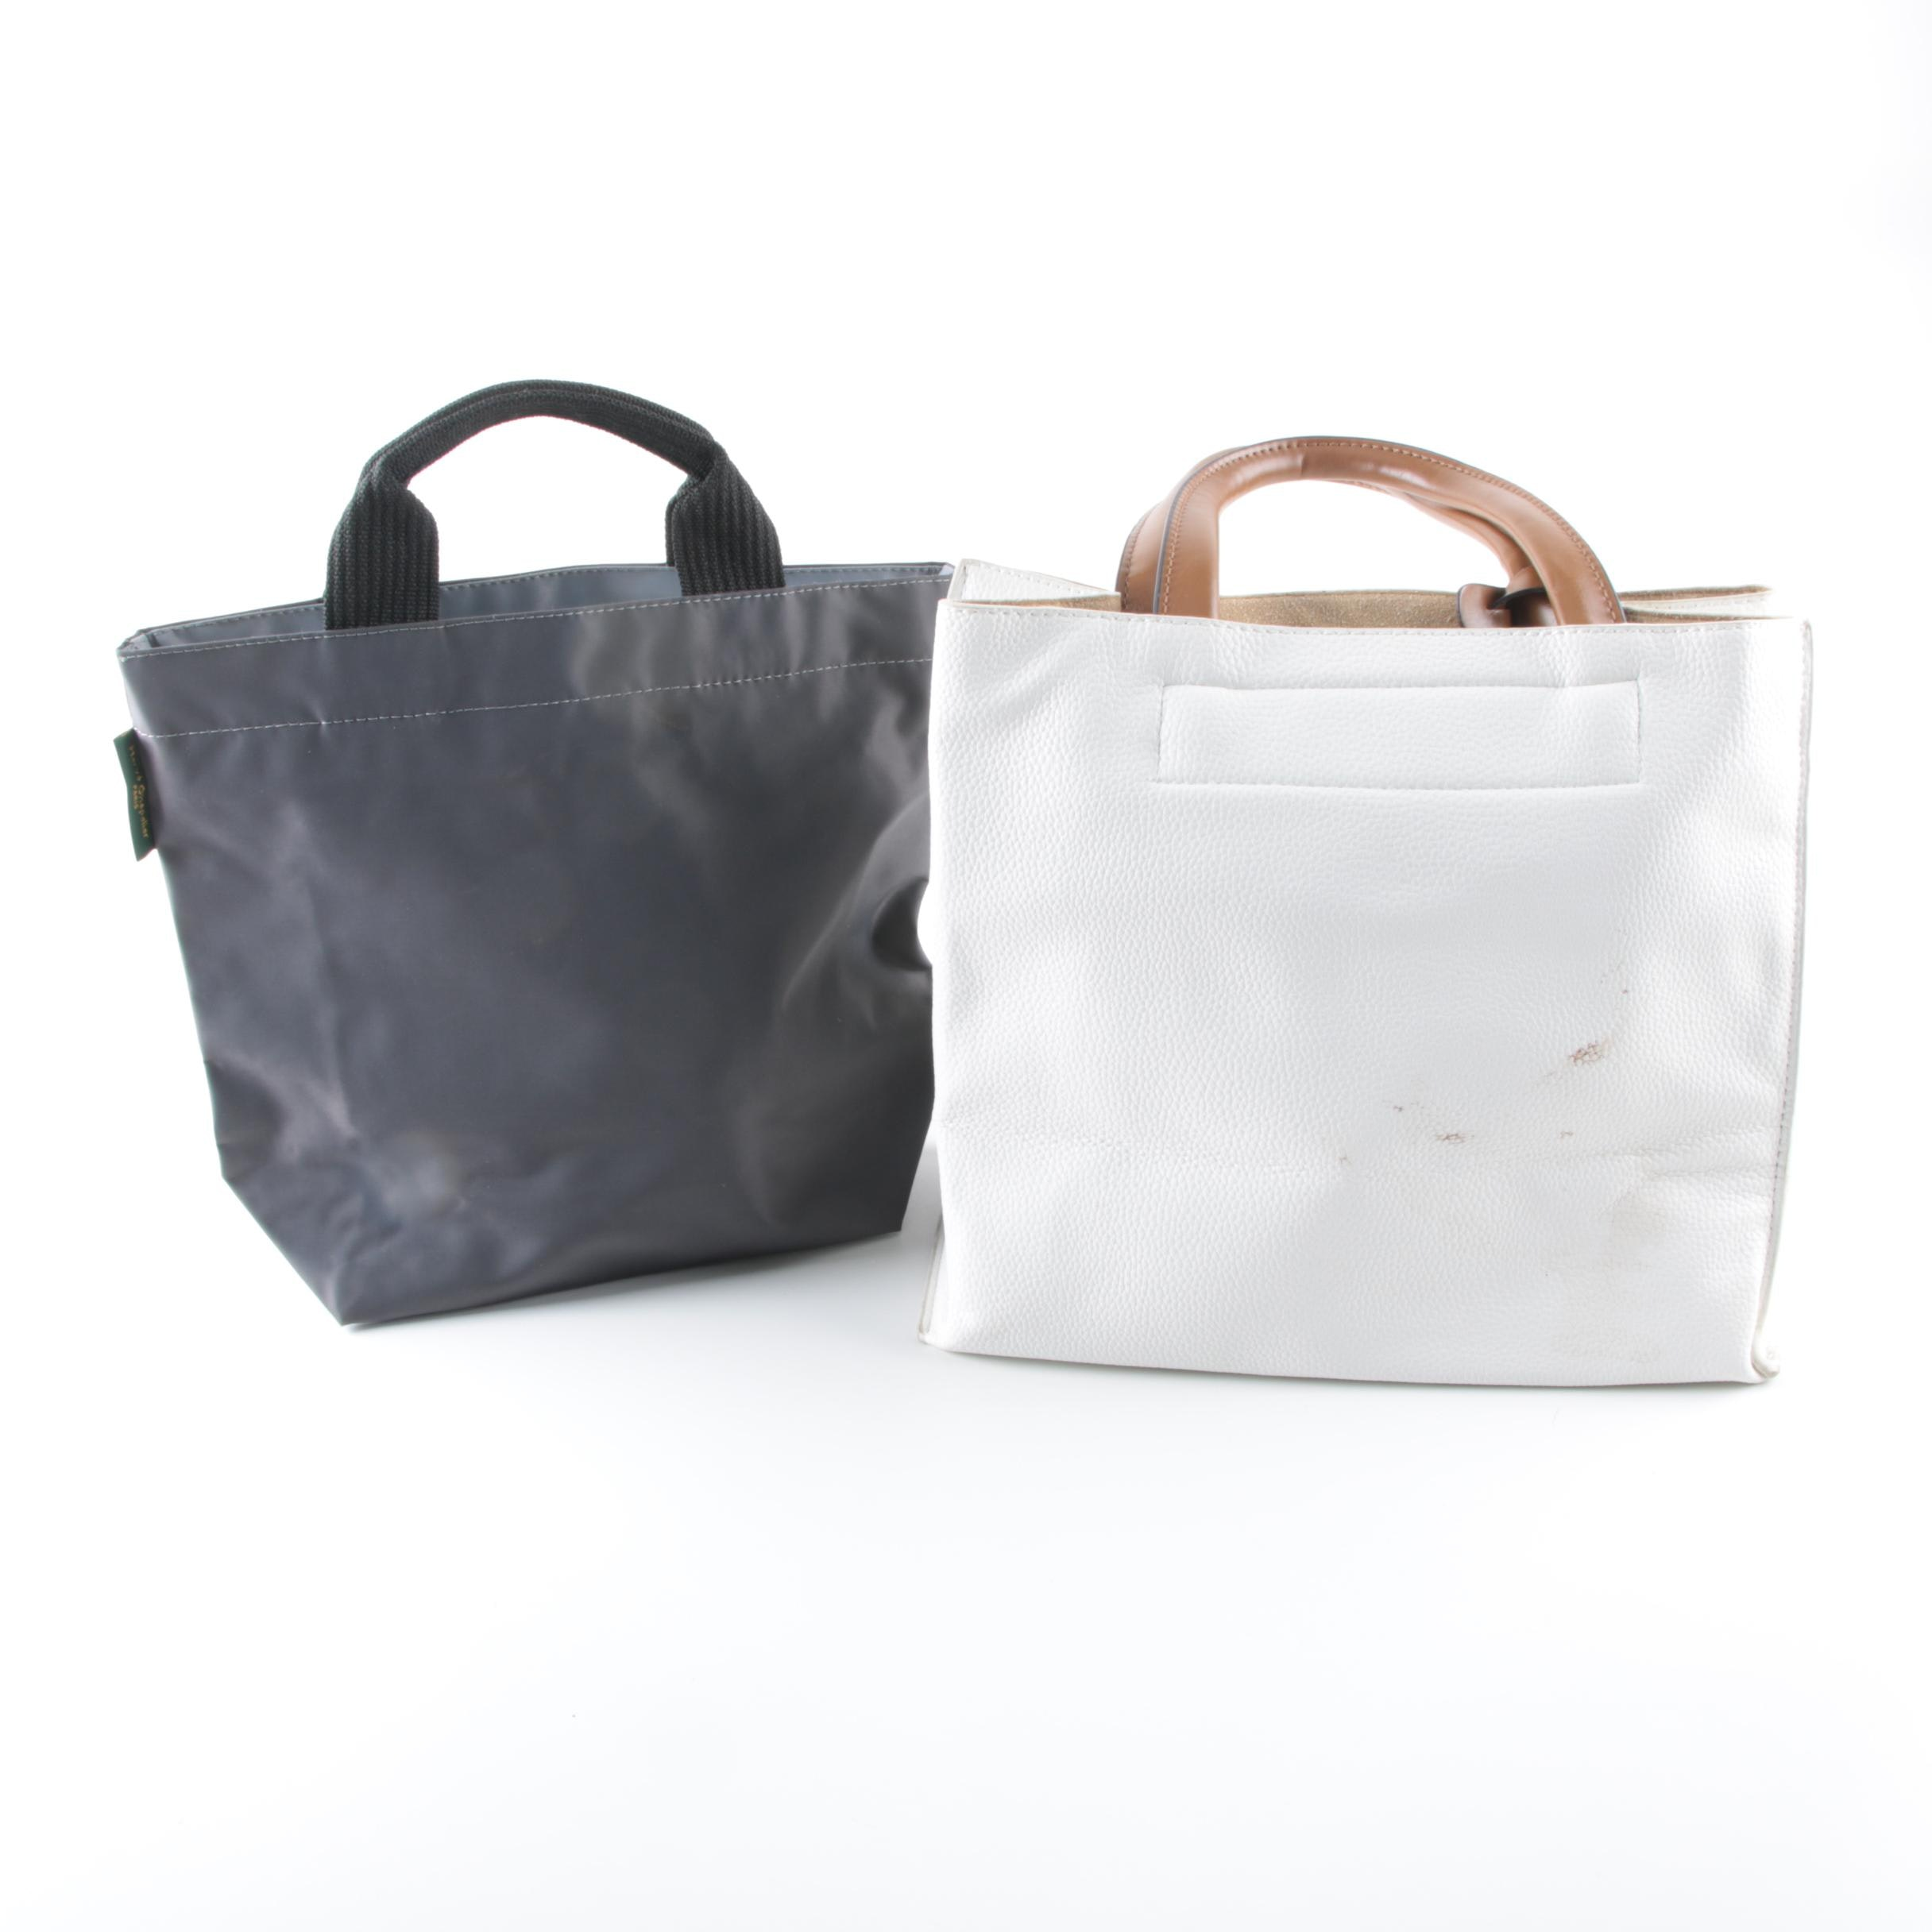 Leather and Nylon Tote Bags